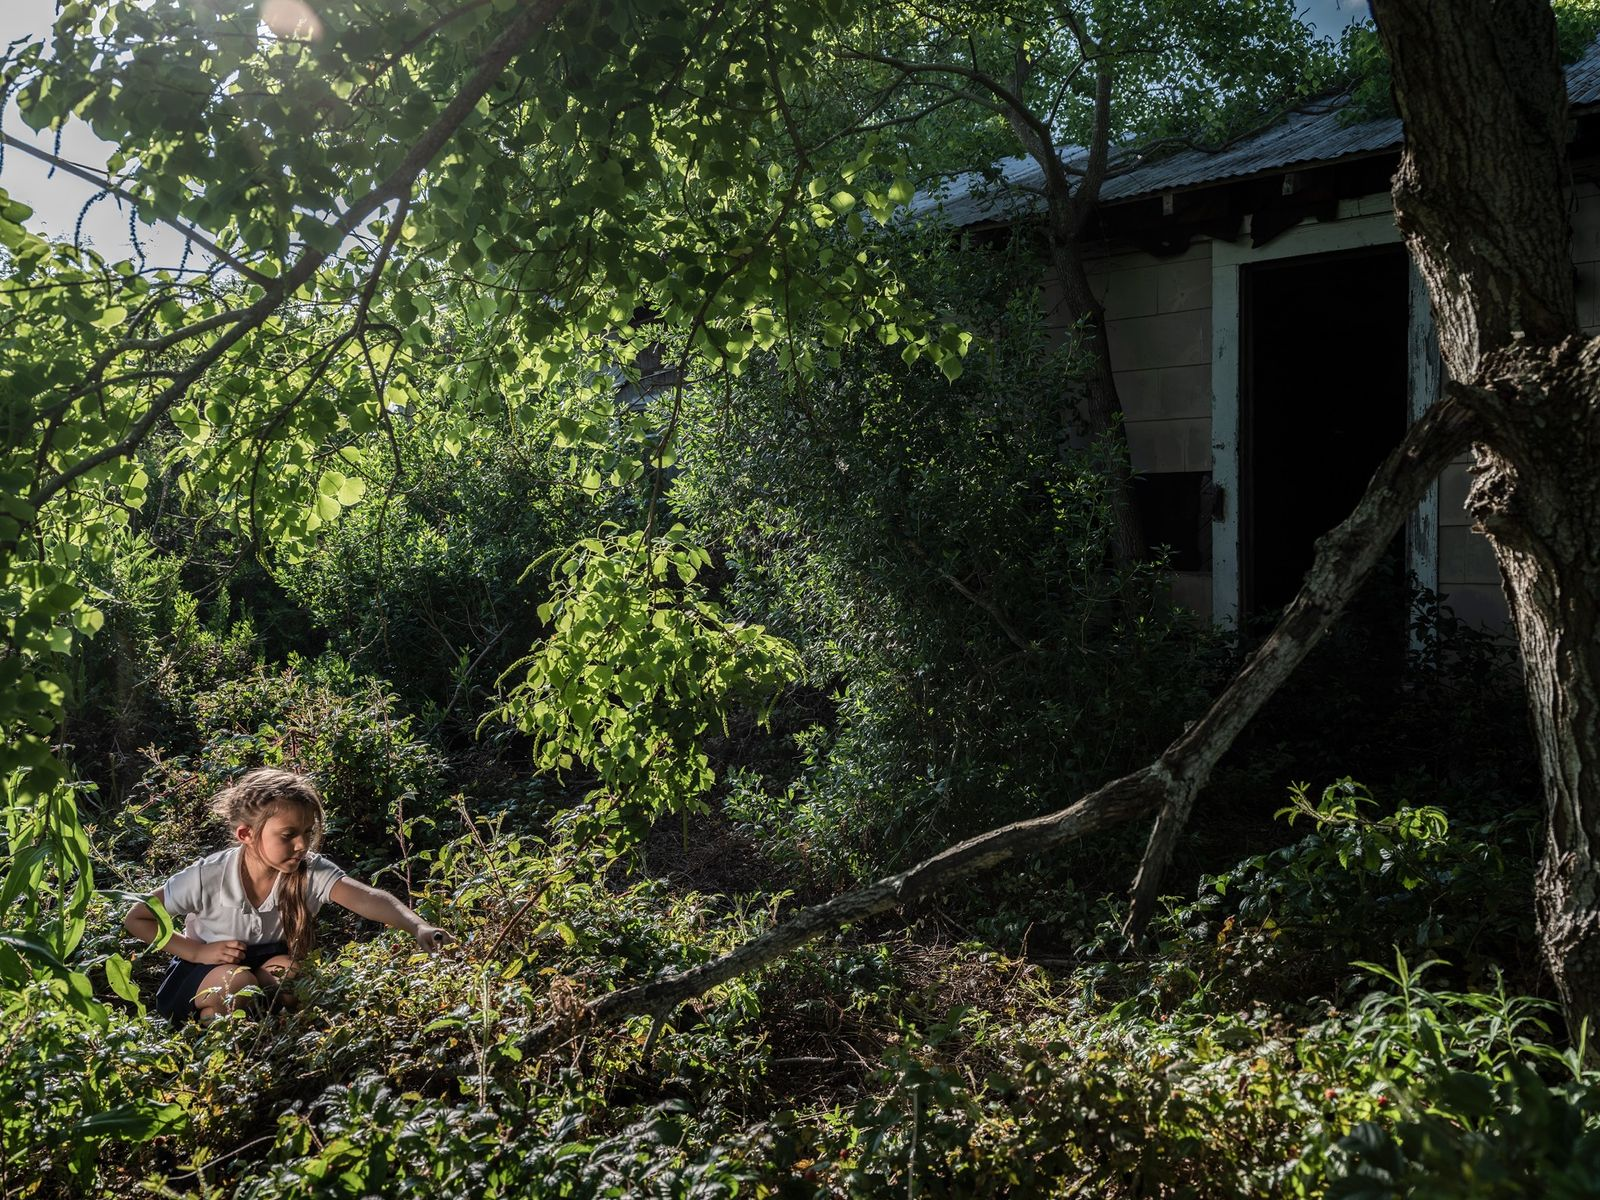 Eight-year-old Bayah Bergeron picks berries by an abandoned house across the street from her home. Bayah's ...